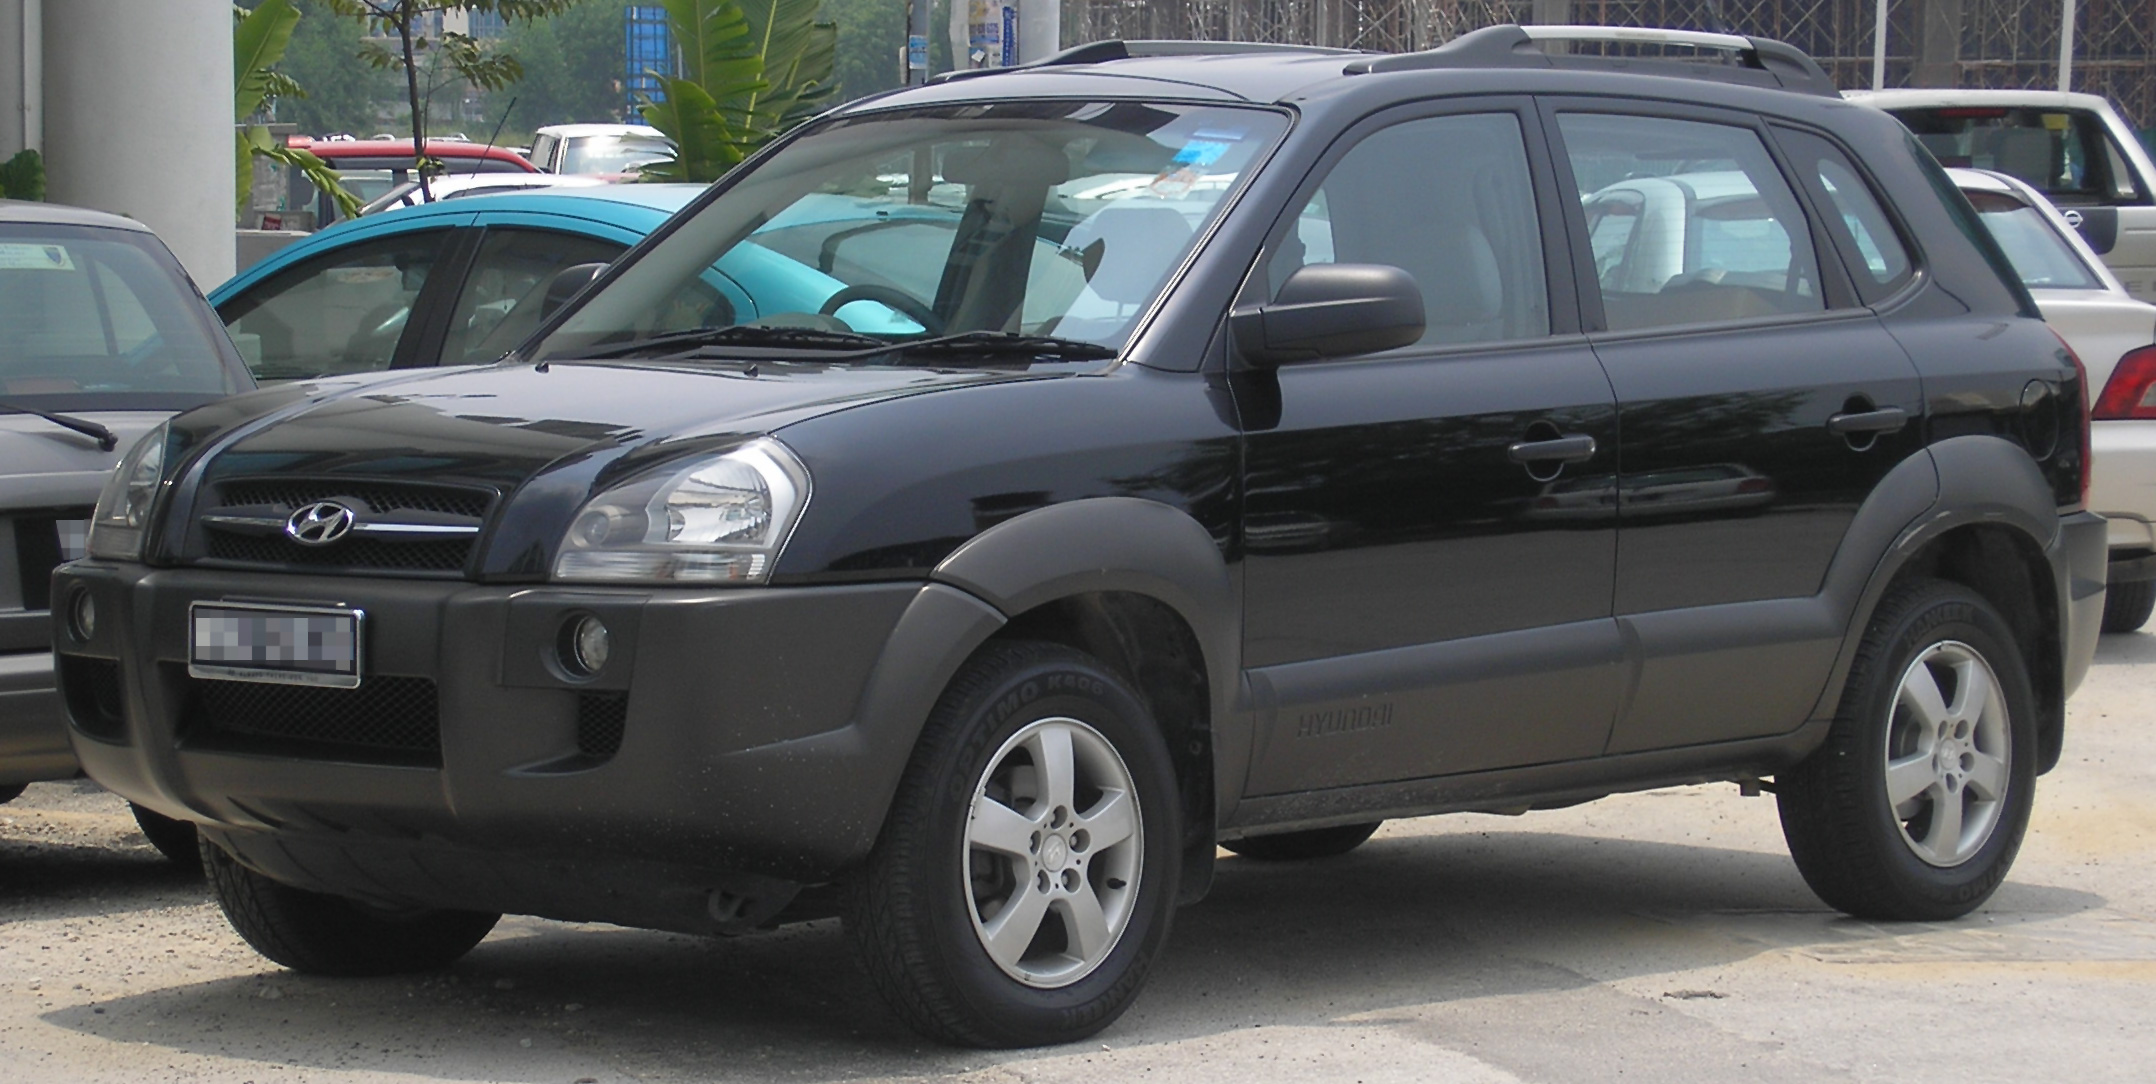 Hyundai Tucson photo 02